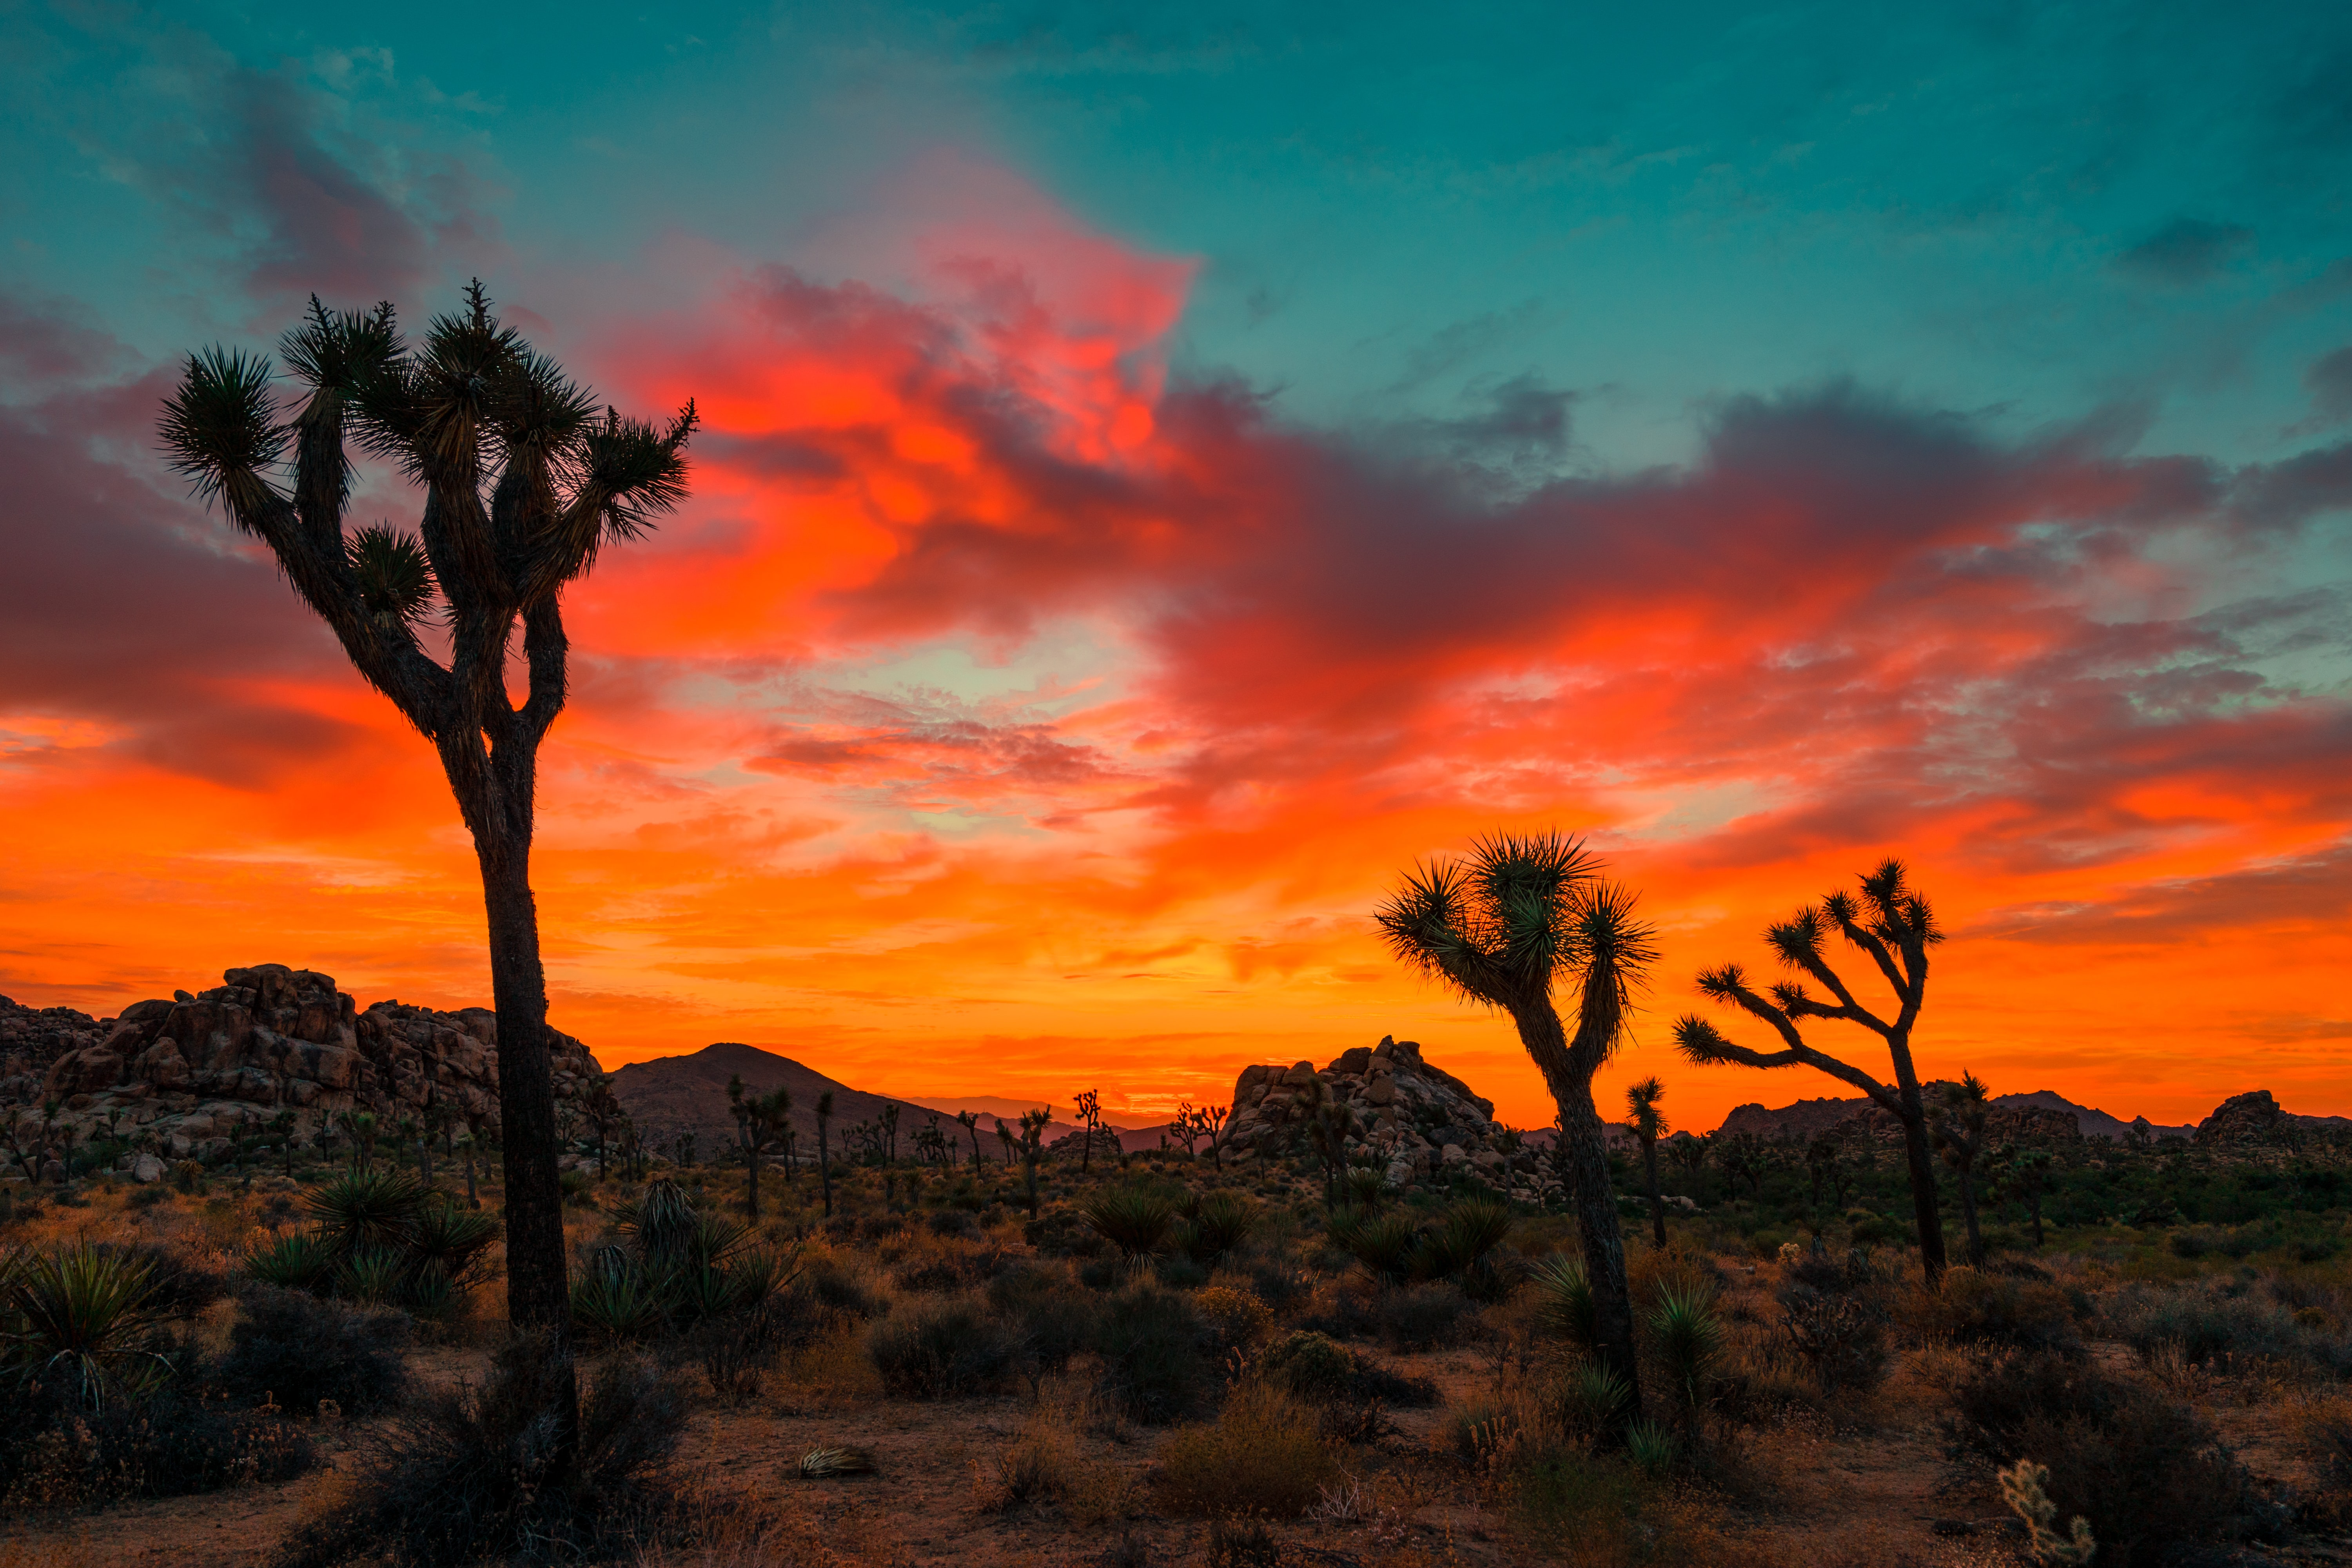 The orange sky over the desert with yucca palm trees in Joshua Tree National Park.